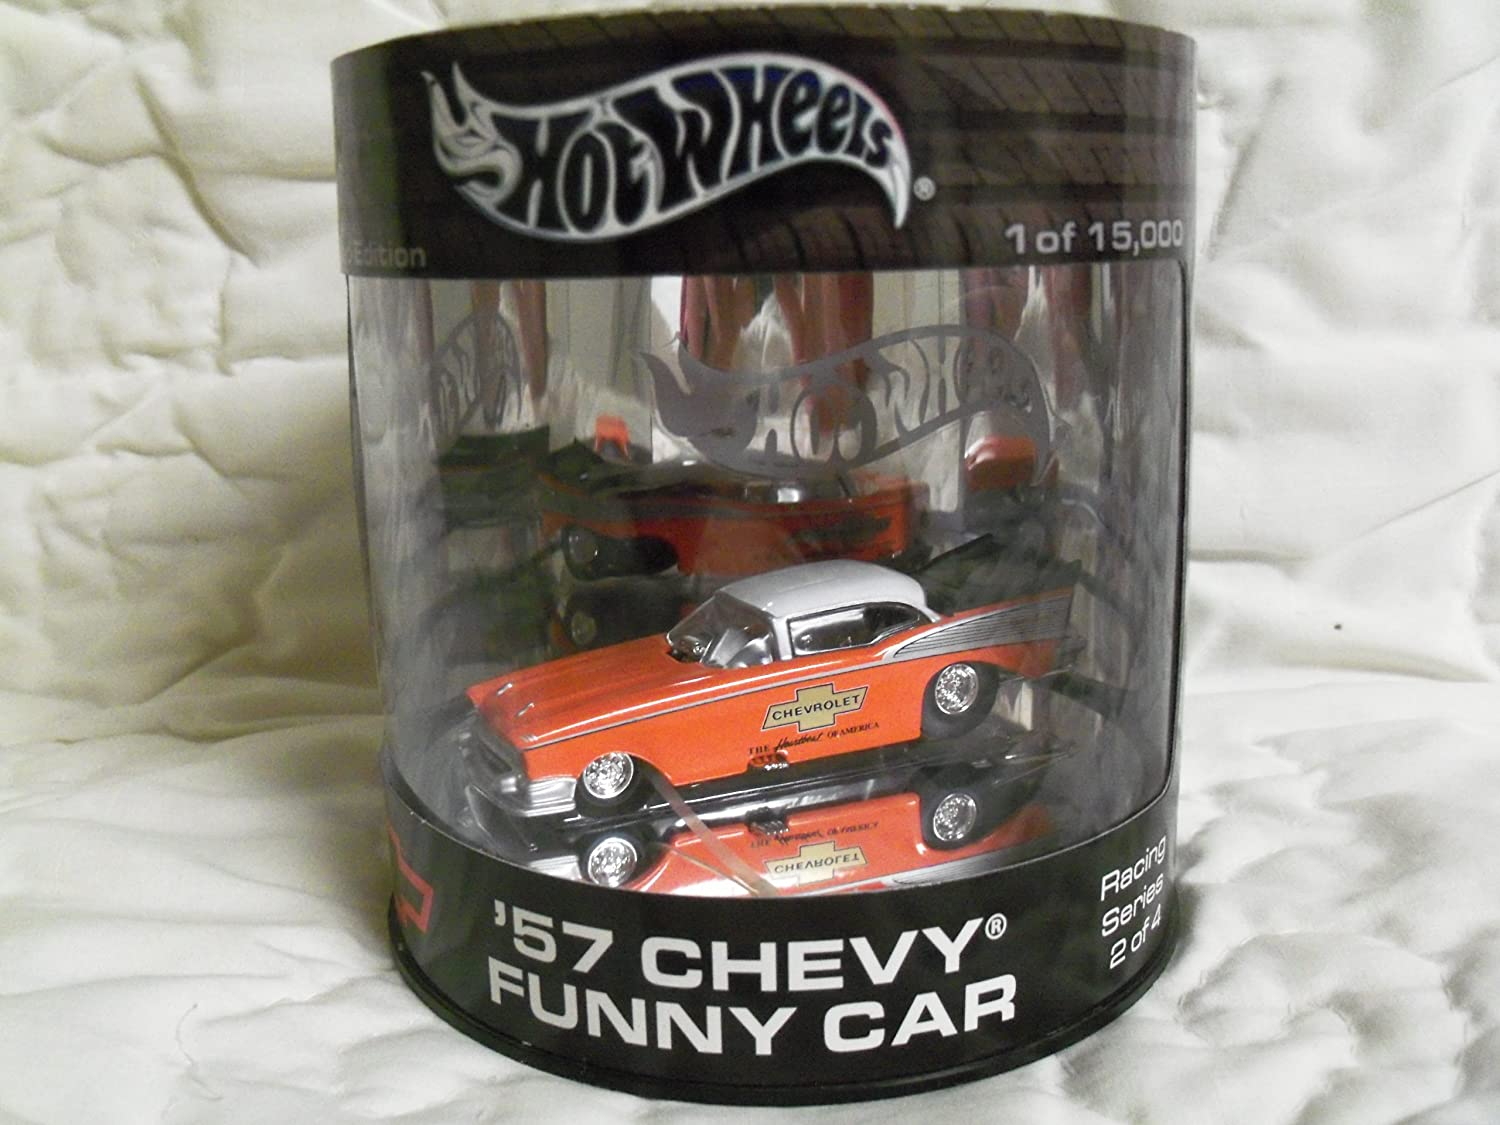 Hot Wheels '57 Chevy Funny Car Limited Edition 1 of 15,000 by mattel